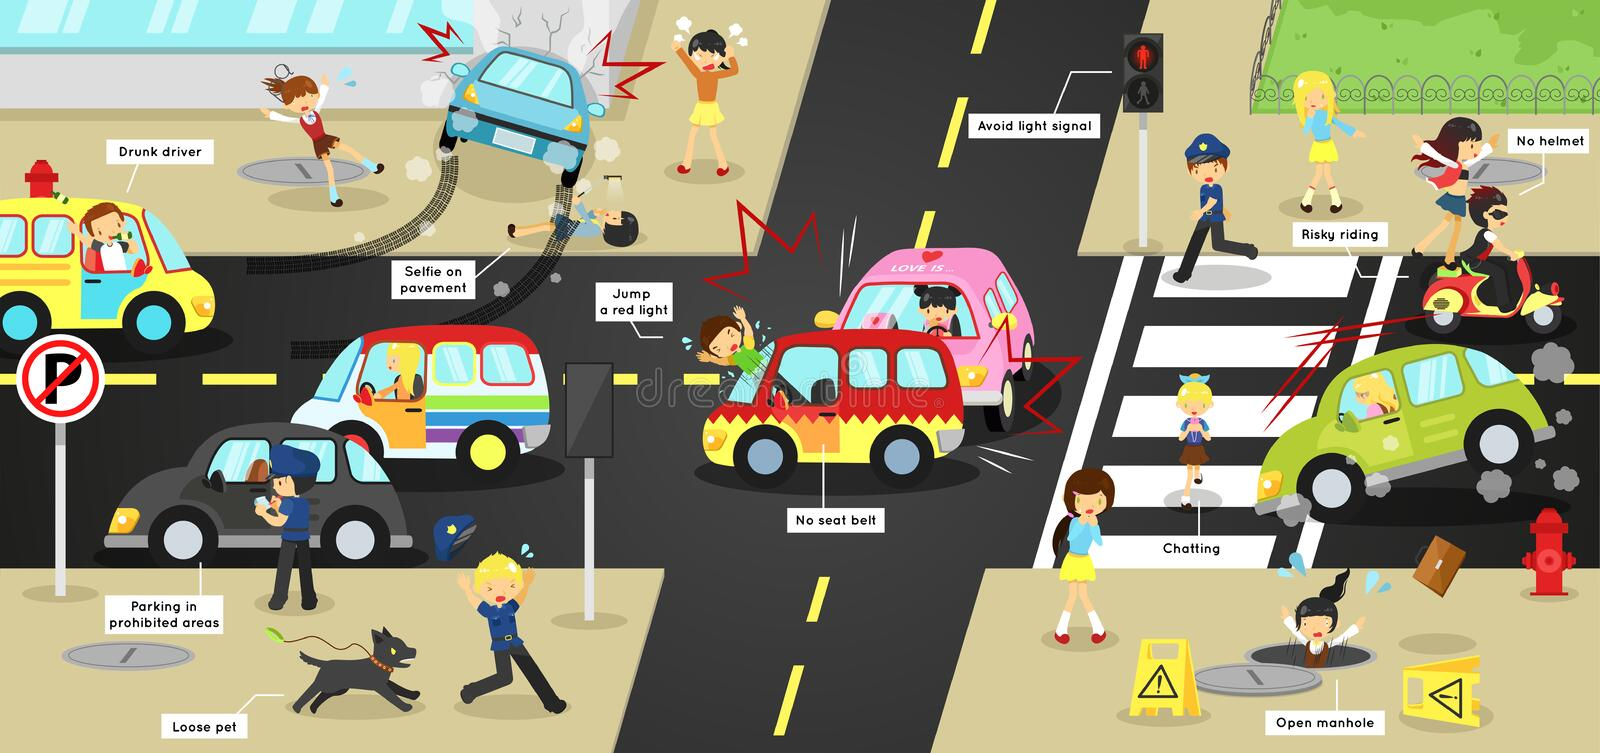 Infographic accidents, injuries, danger and safety caution royalty free illustration